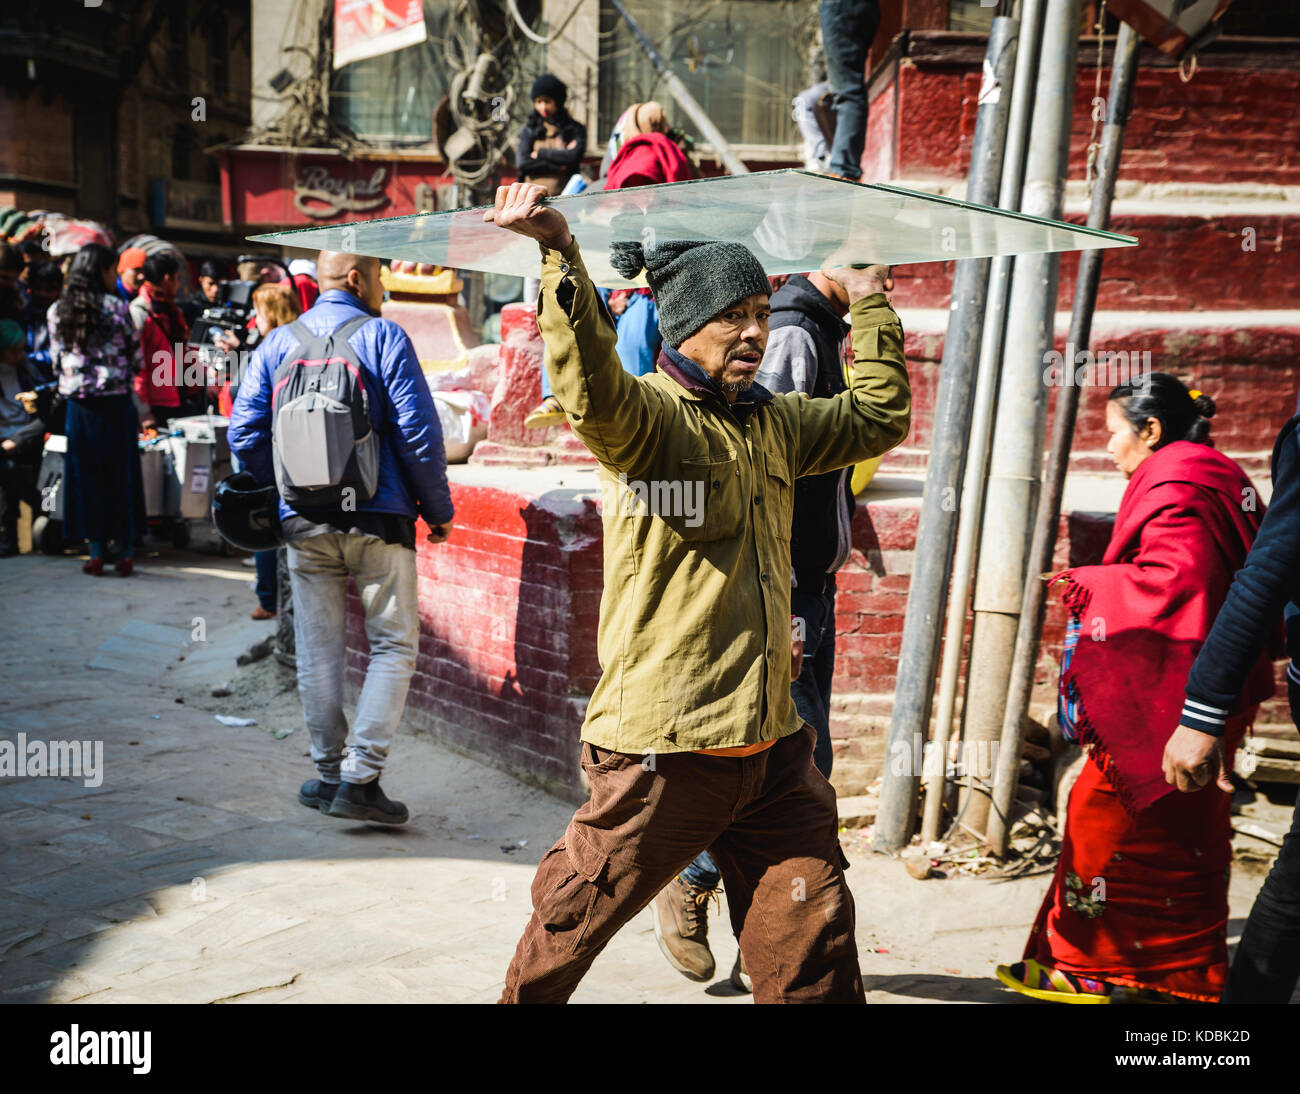 KATHMANDU, NEPAL - CIRCA JANUARY 2017: Nepali man carrying a sheet of glass on his head in Asan neighbourhood. - Stock Image